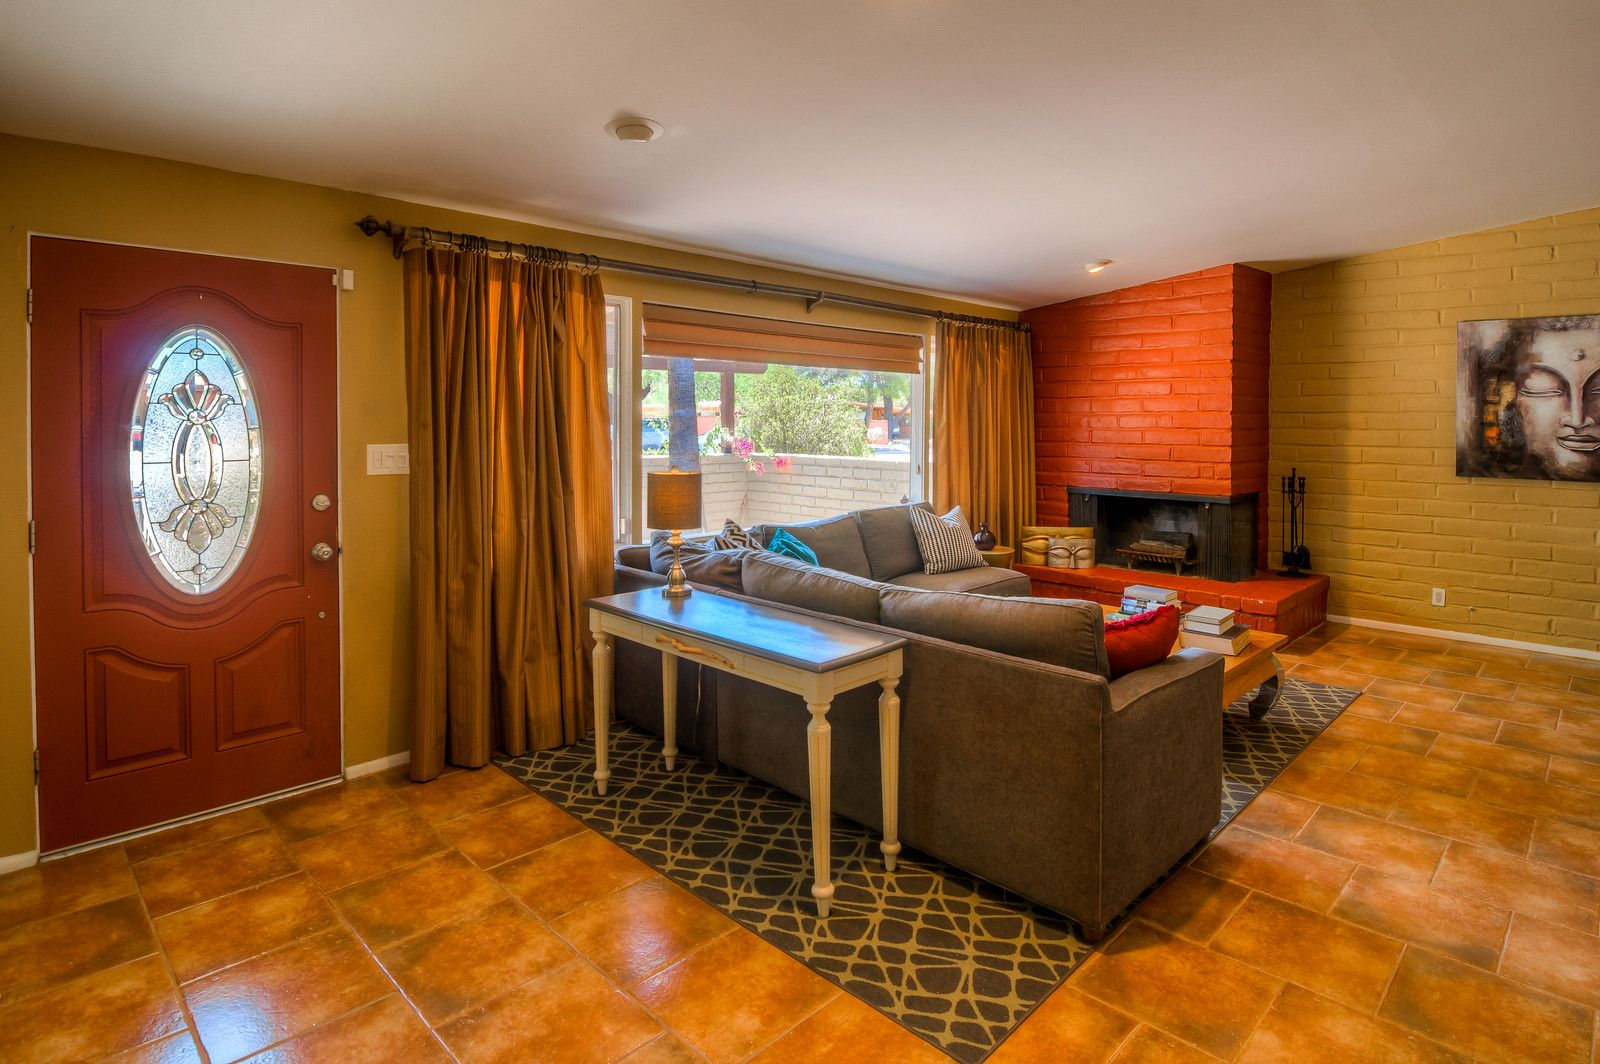 To learn more about this home for sale at e opatas st tucson